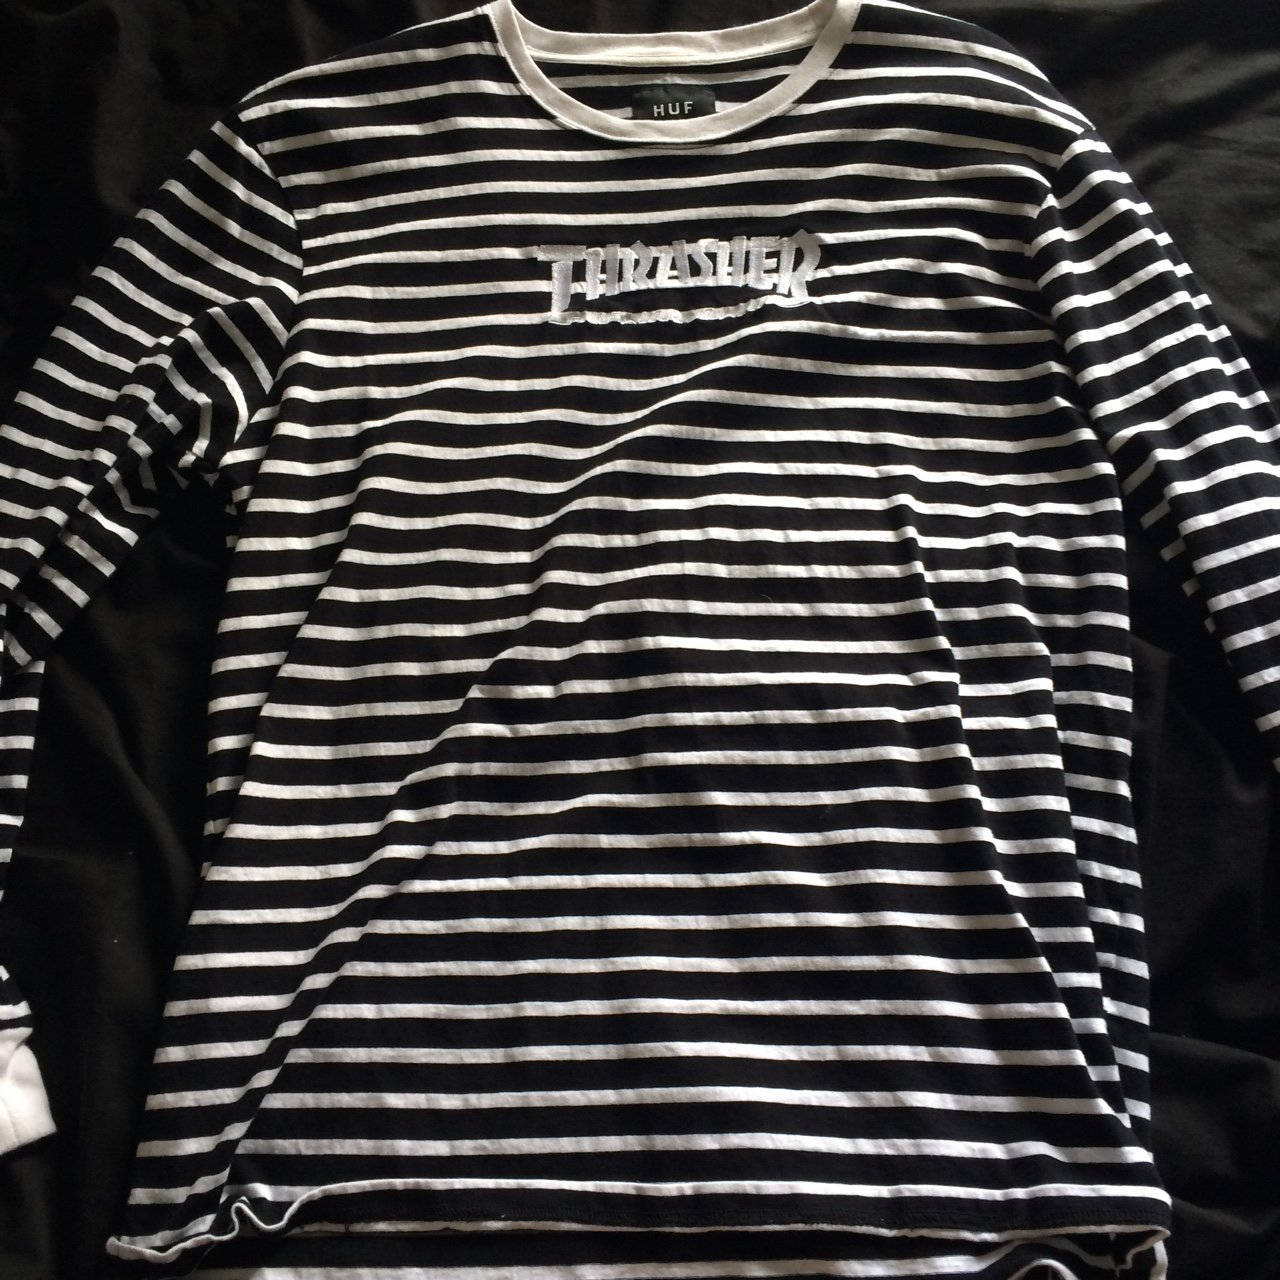 Thrasher x HUF black and white striped long sleeve t-shirt. - Depop 7f14ad78d